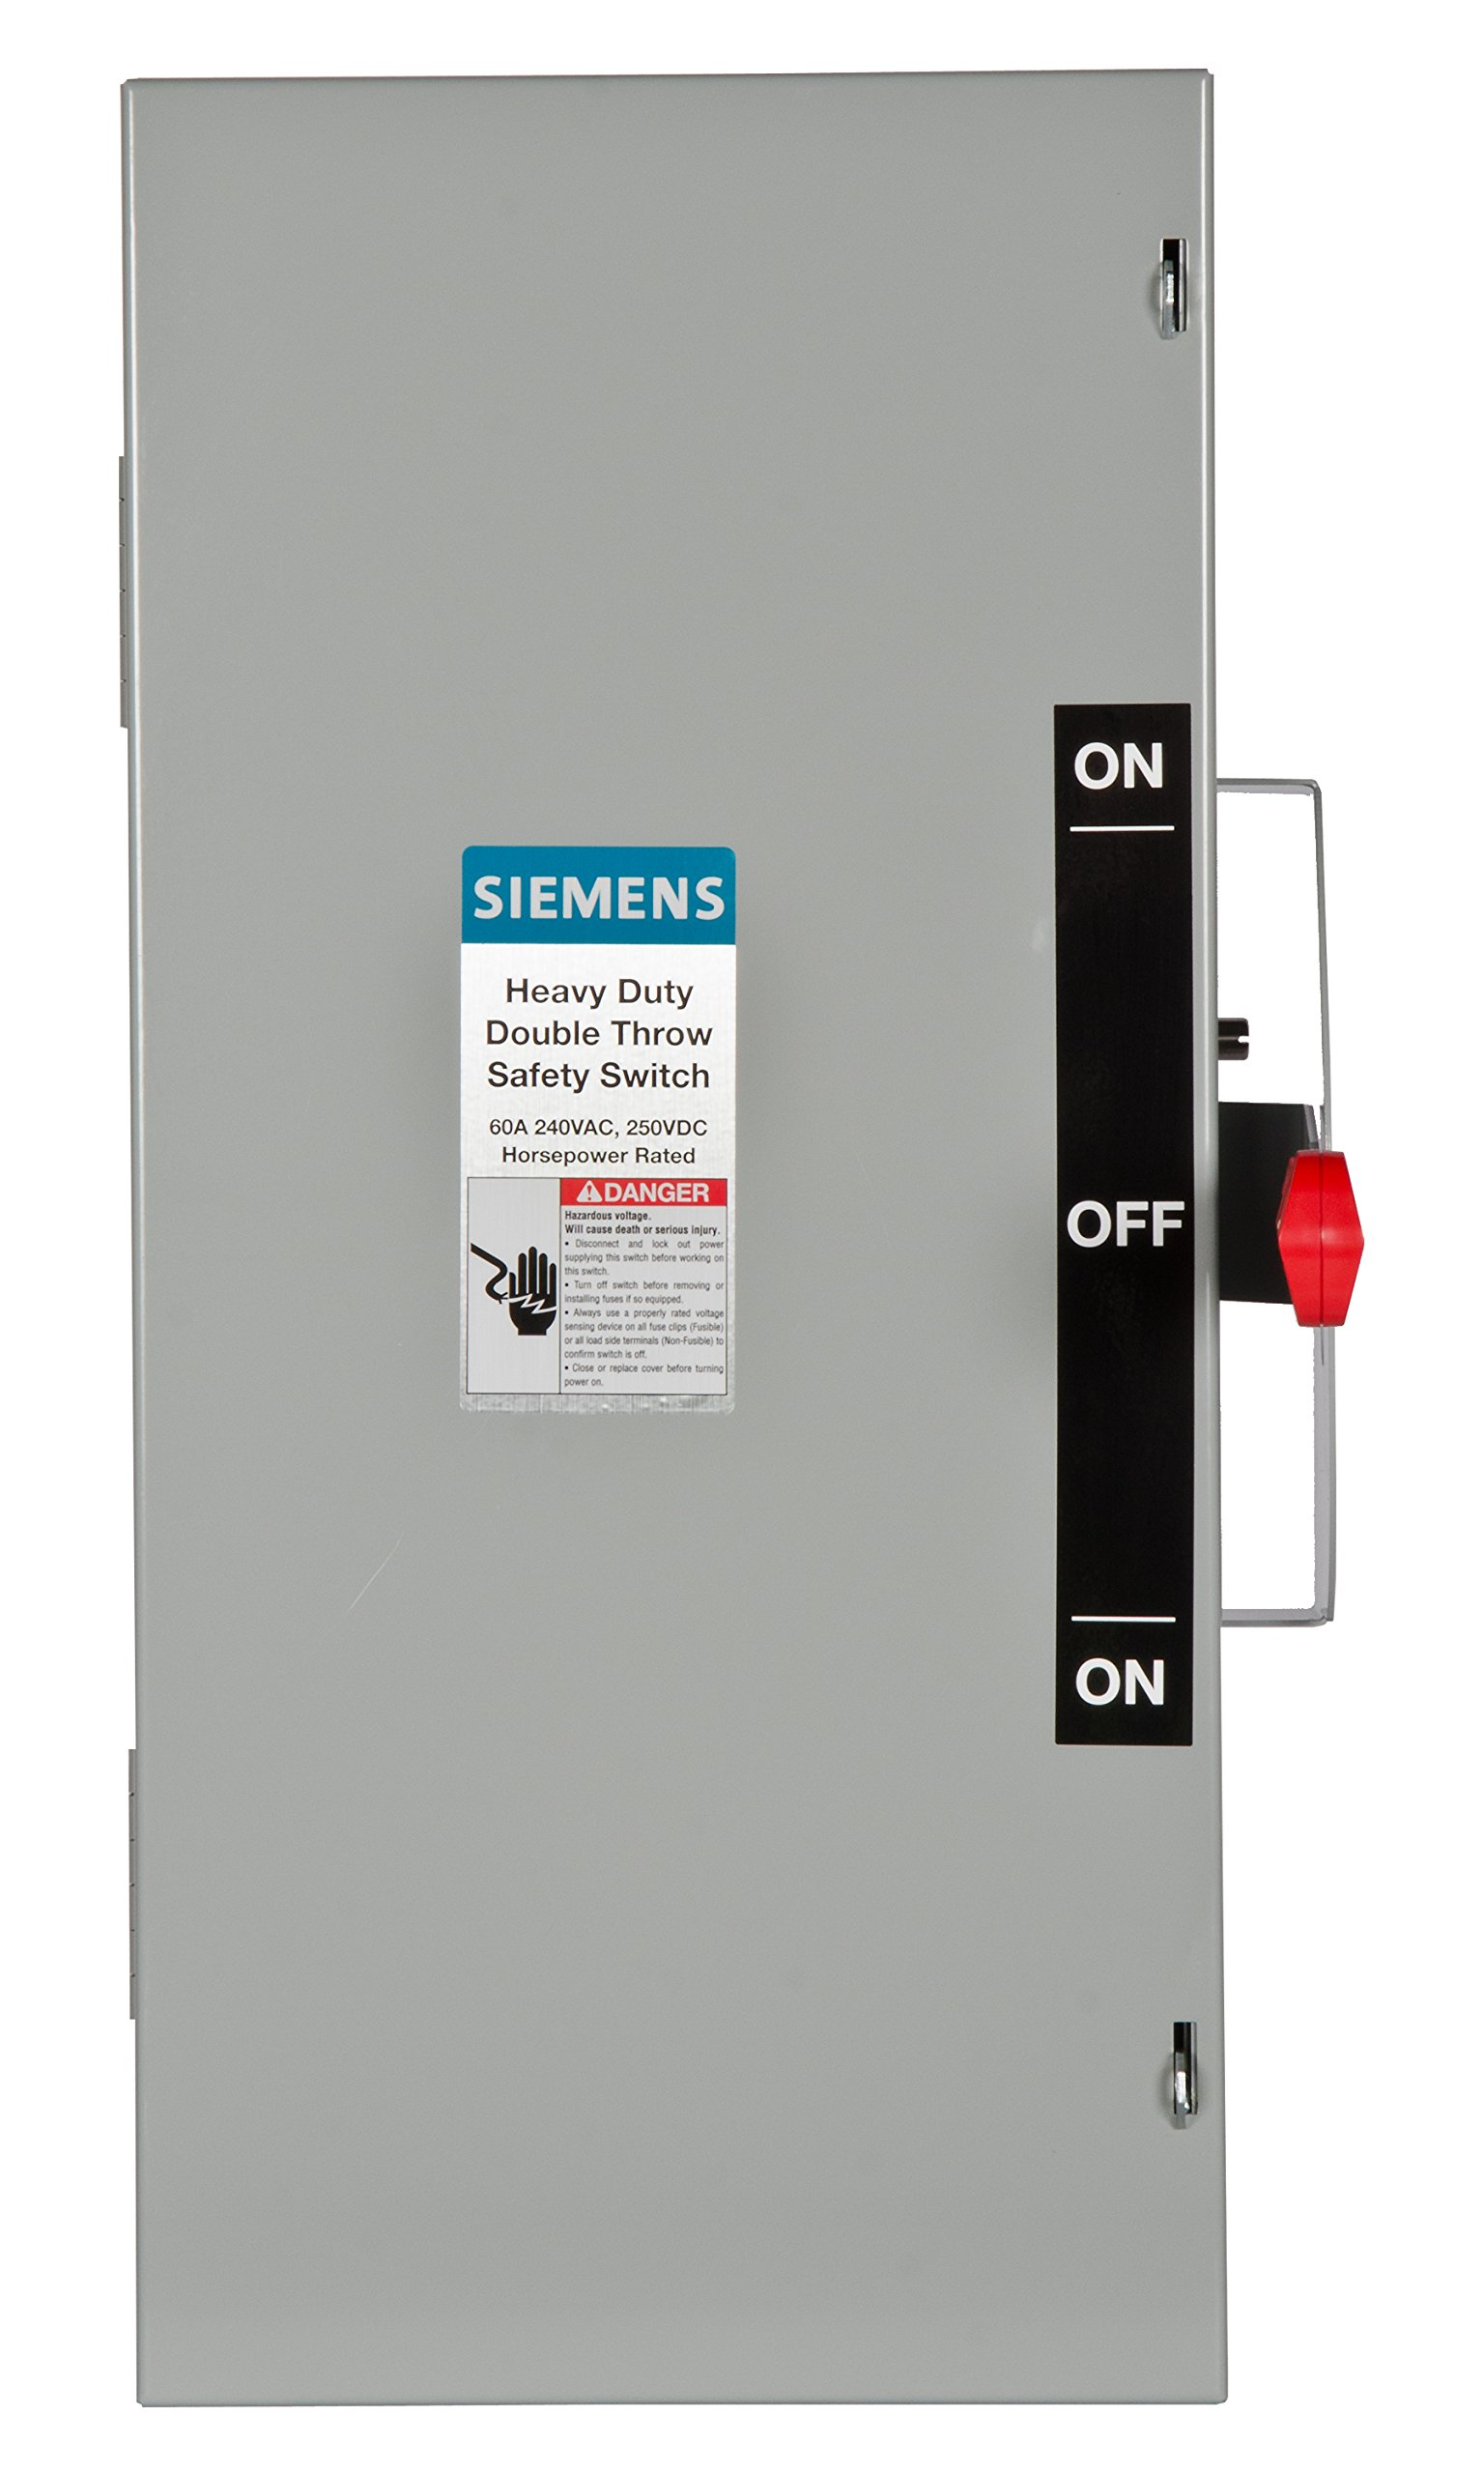 Siemens DTNF222 60-Amp 2 Pole 240-volt 2W Non-Fused Double Throw Safety Switches